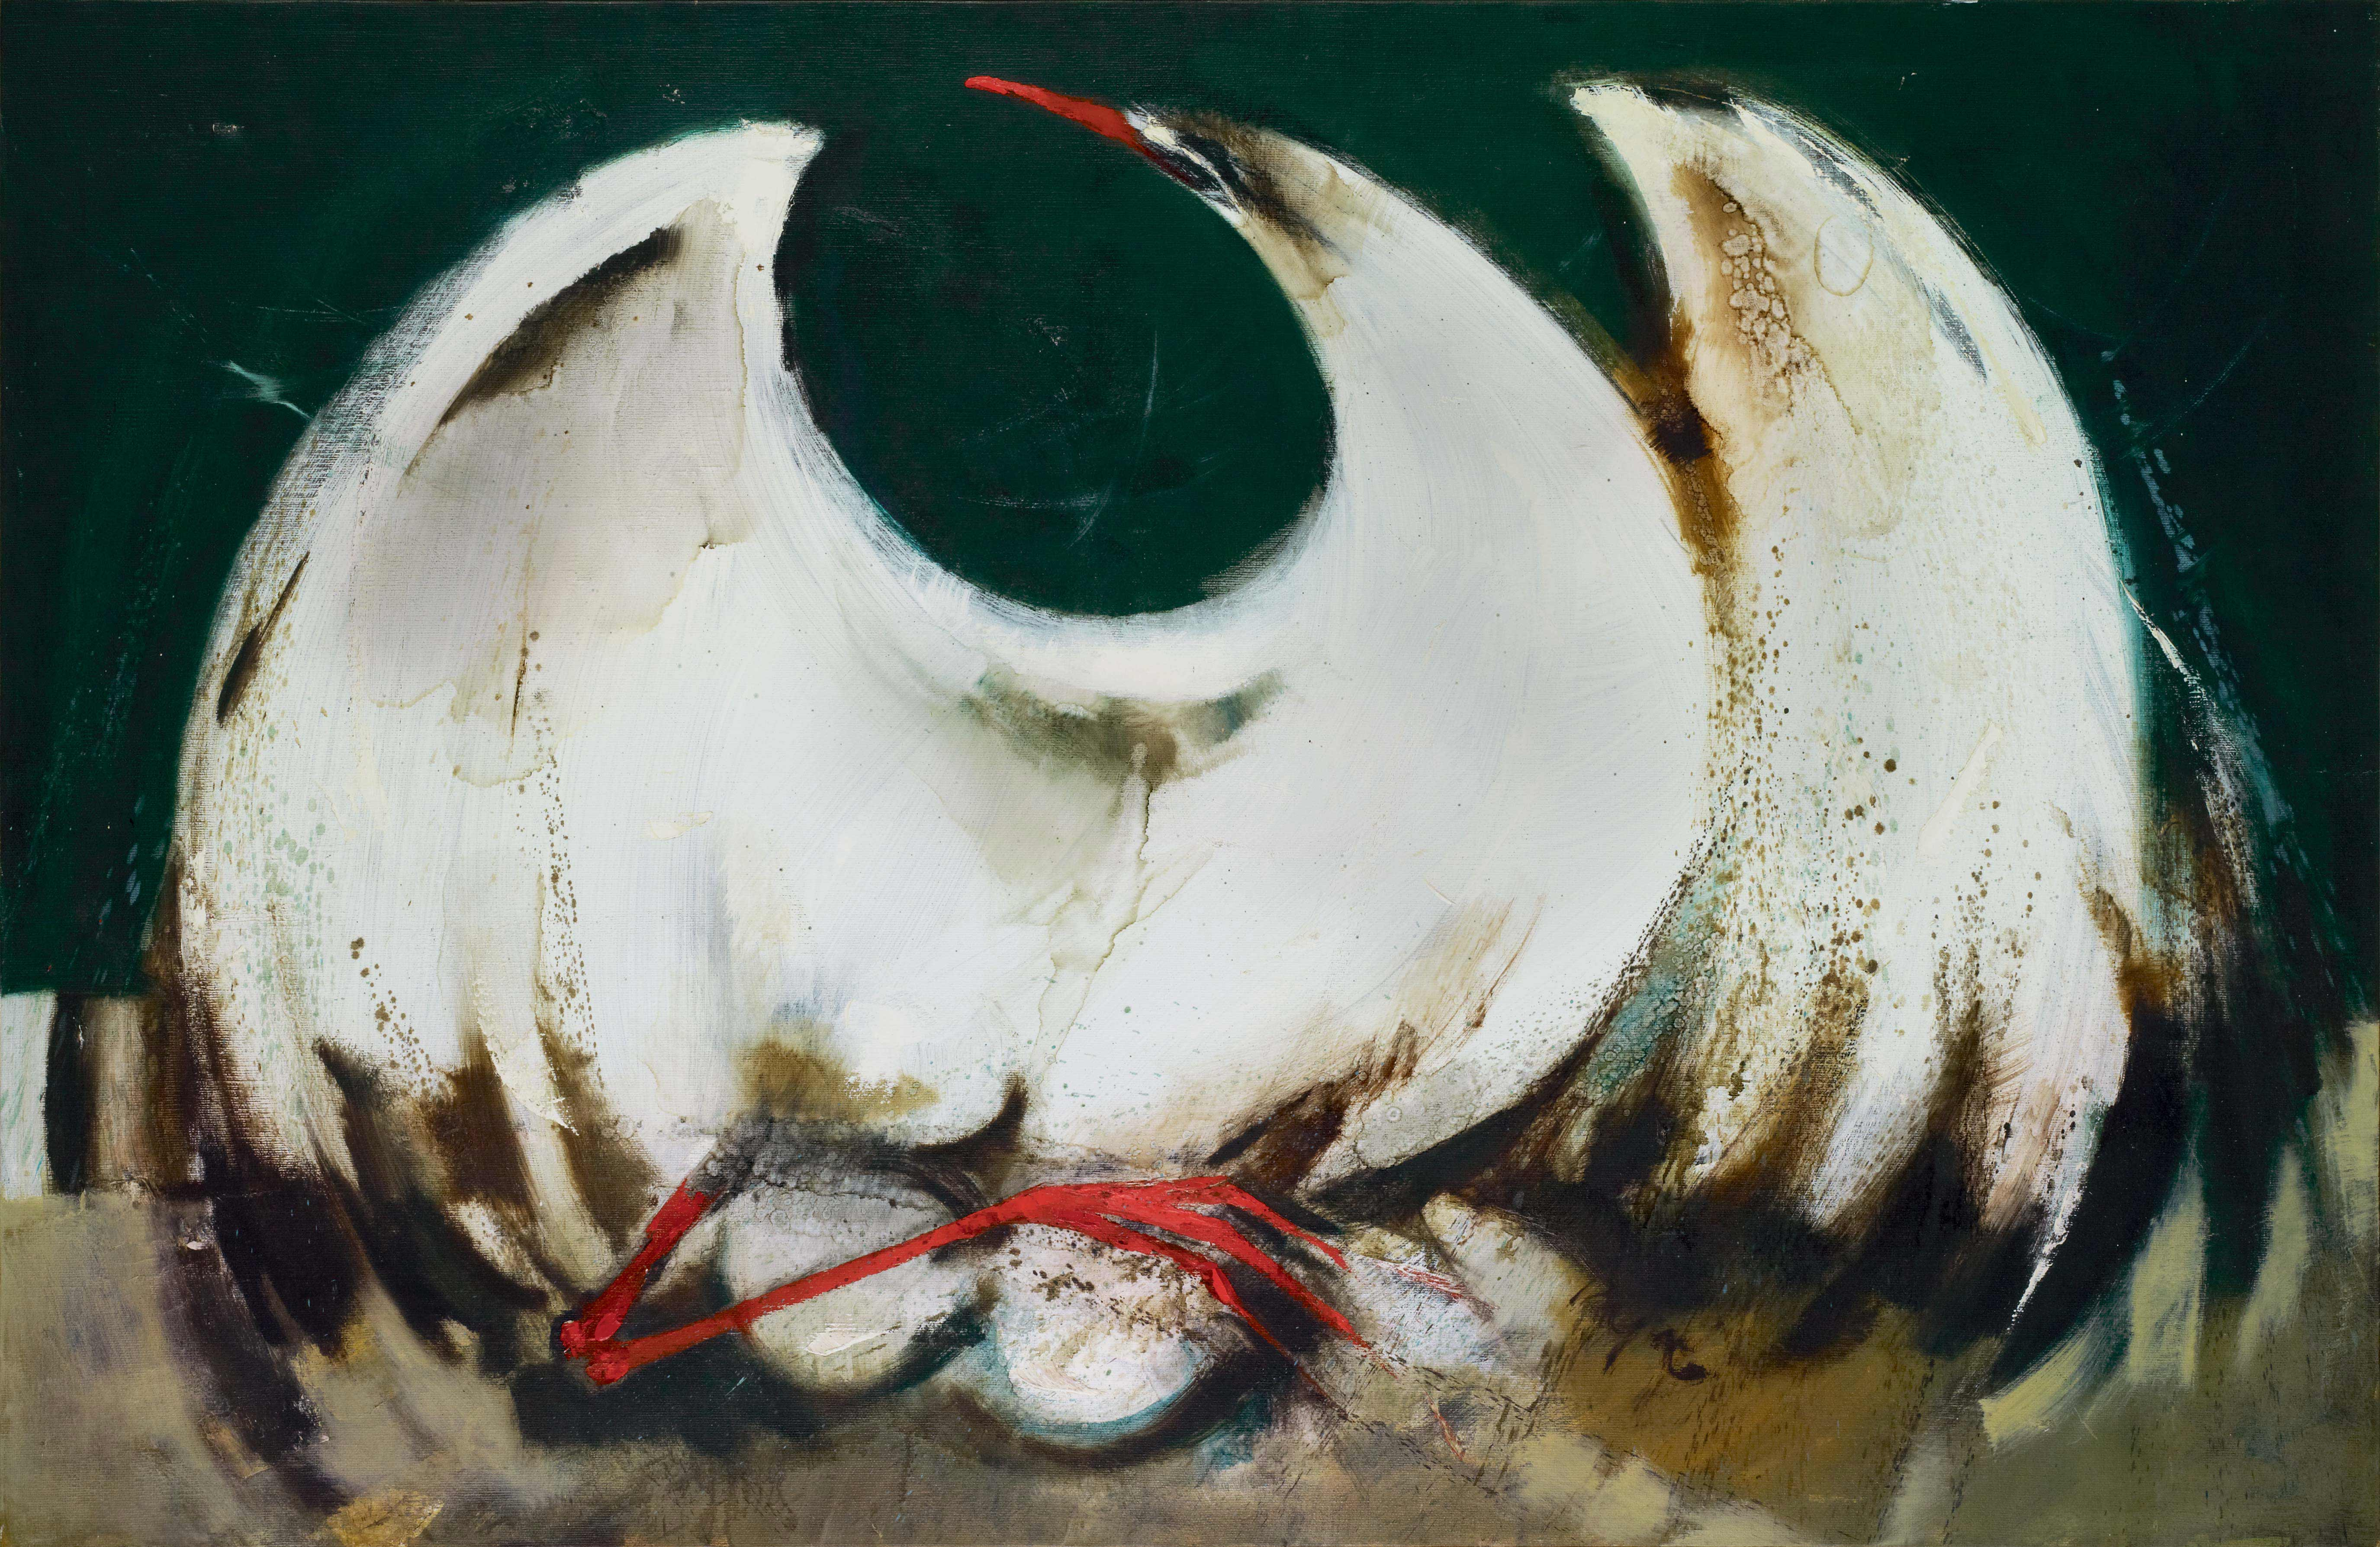 Sea Bird on Nest, by William Pajaud, n.d.